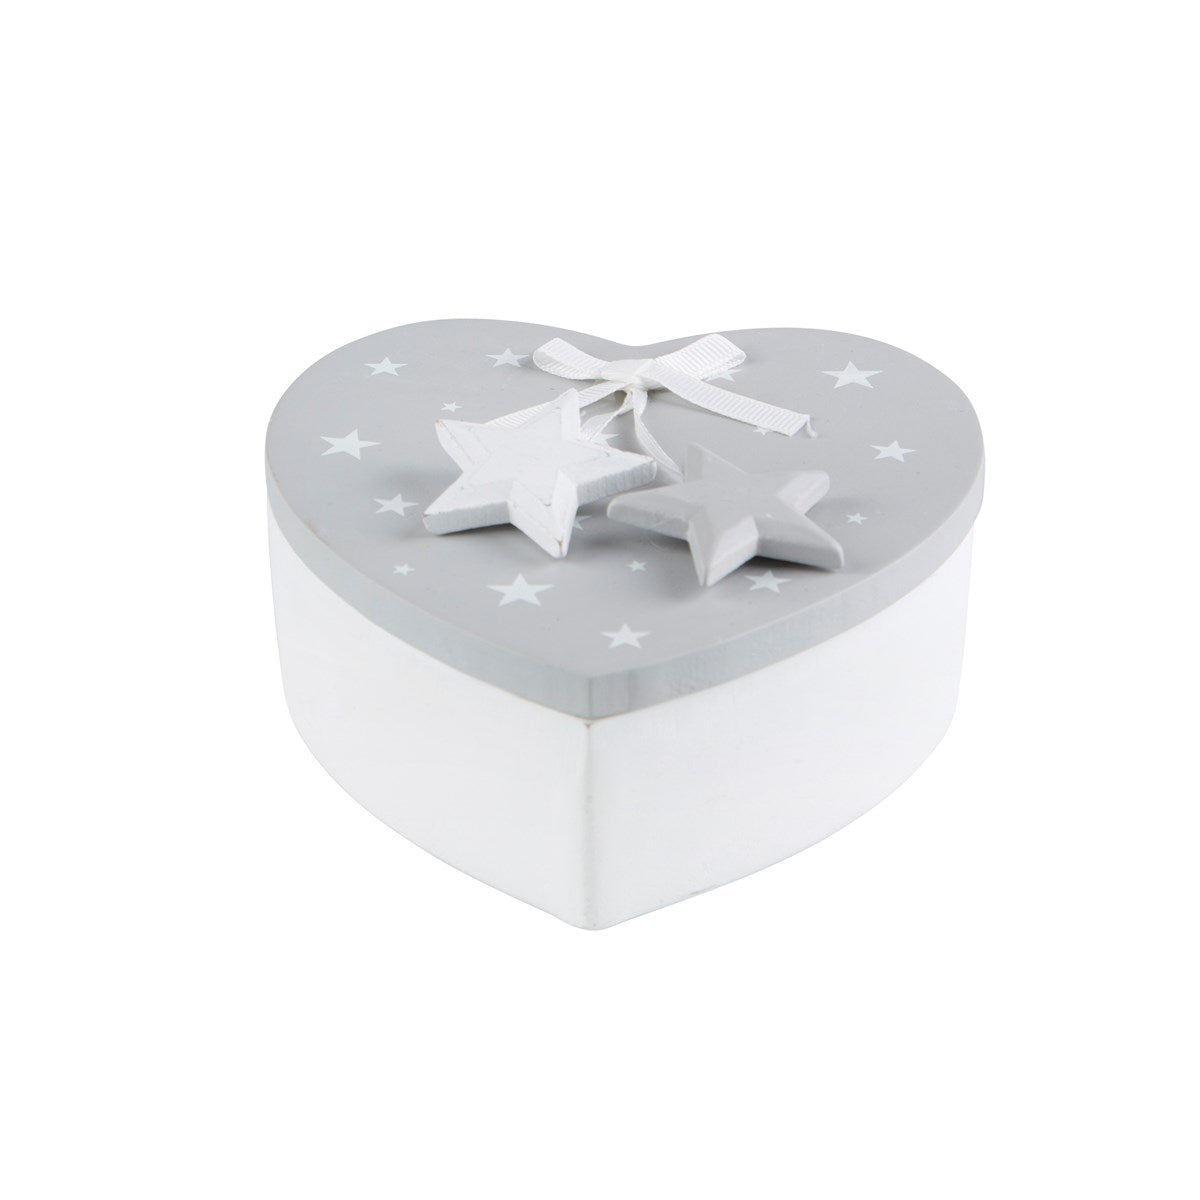 GREY & WHITE STAR HEART STORAGE BOX